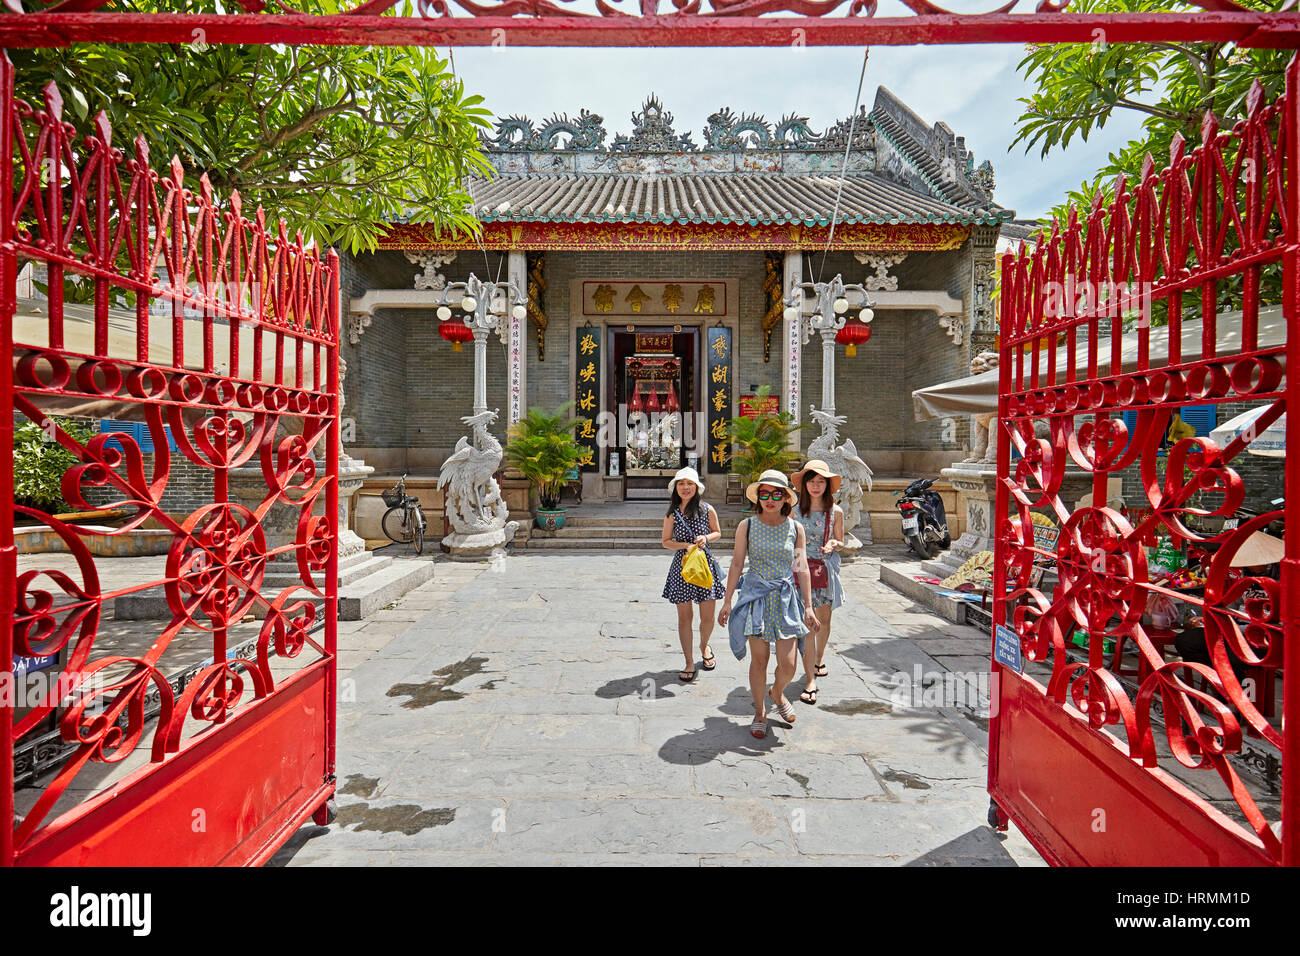 Tourists visiting Cantonese (Quang Trieu) Assembly Hall. Hoi An Ancient Town, Quang Nam Province, Vietnam. - Stock Image